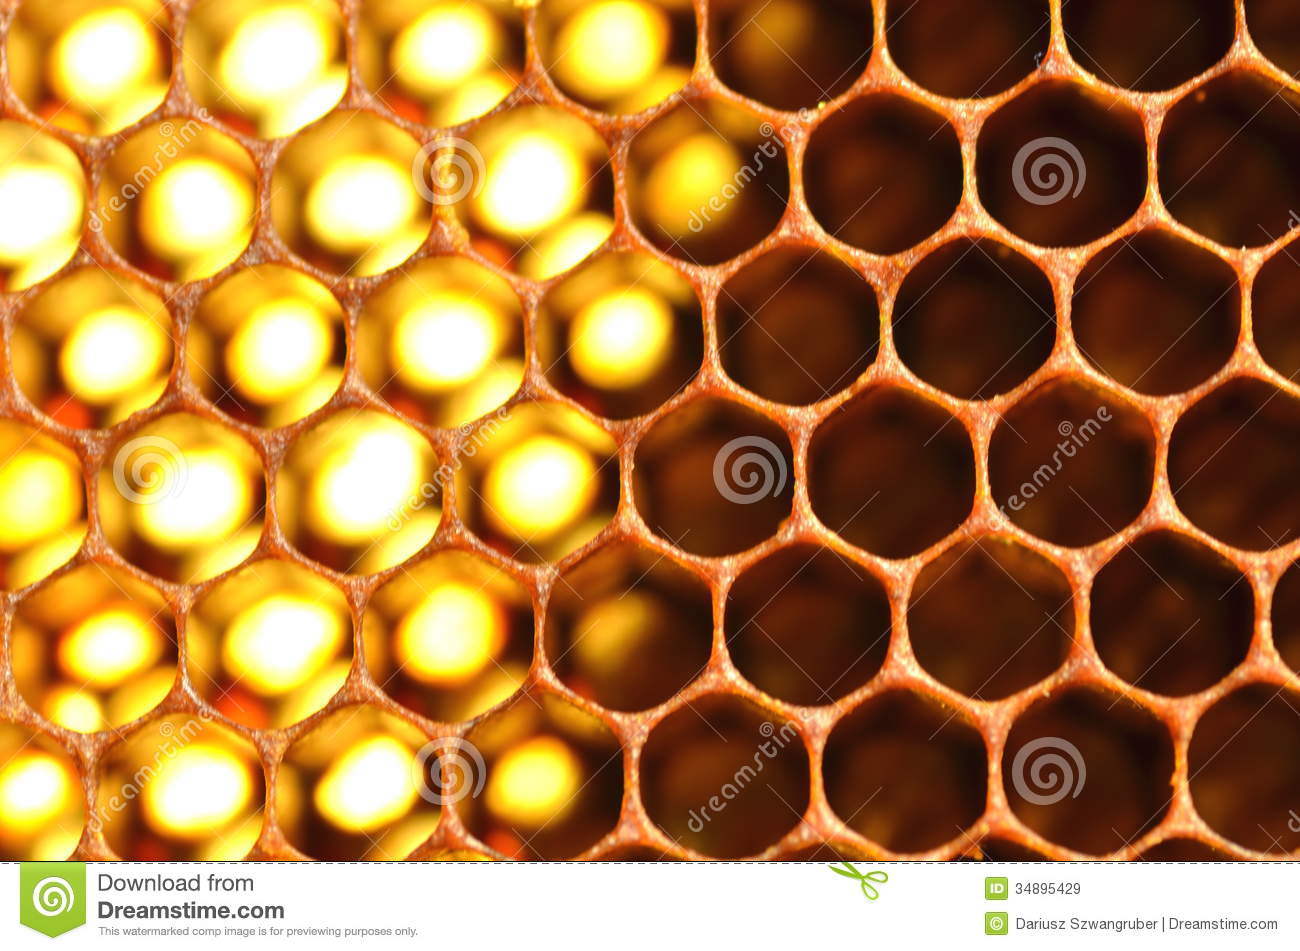 Yellow honey background with hexagonal pattern vector free download - Natural Honeycomb Royalty Free Stock Images Image 34895429